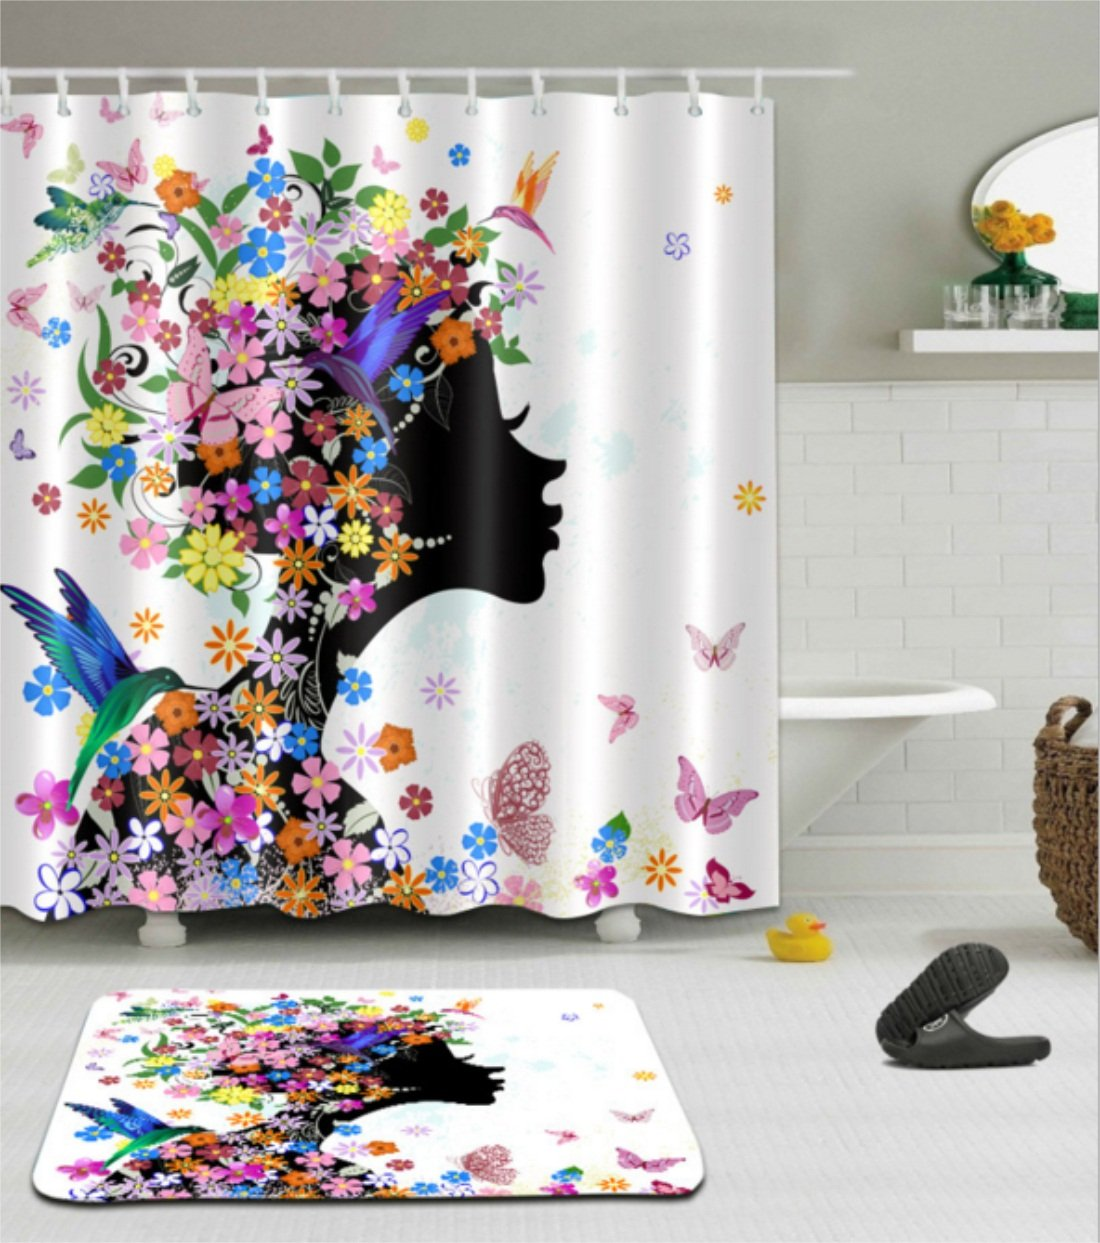 71 W x 71 L Chengsan Butterfly Shower Curtain Girl Decor by Girl Fashion Flowers with Butterflies Ornamental Floral Foliage Nature Forest Design Polyester Fabric Bathroom Set with Hooks